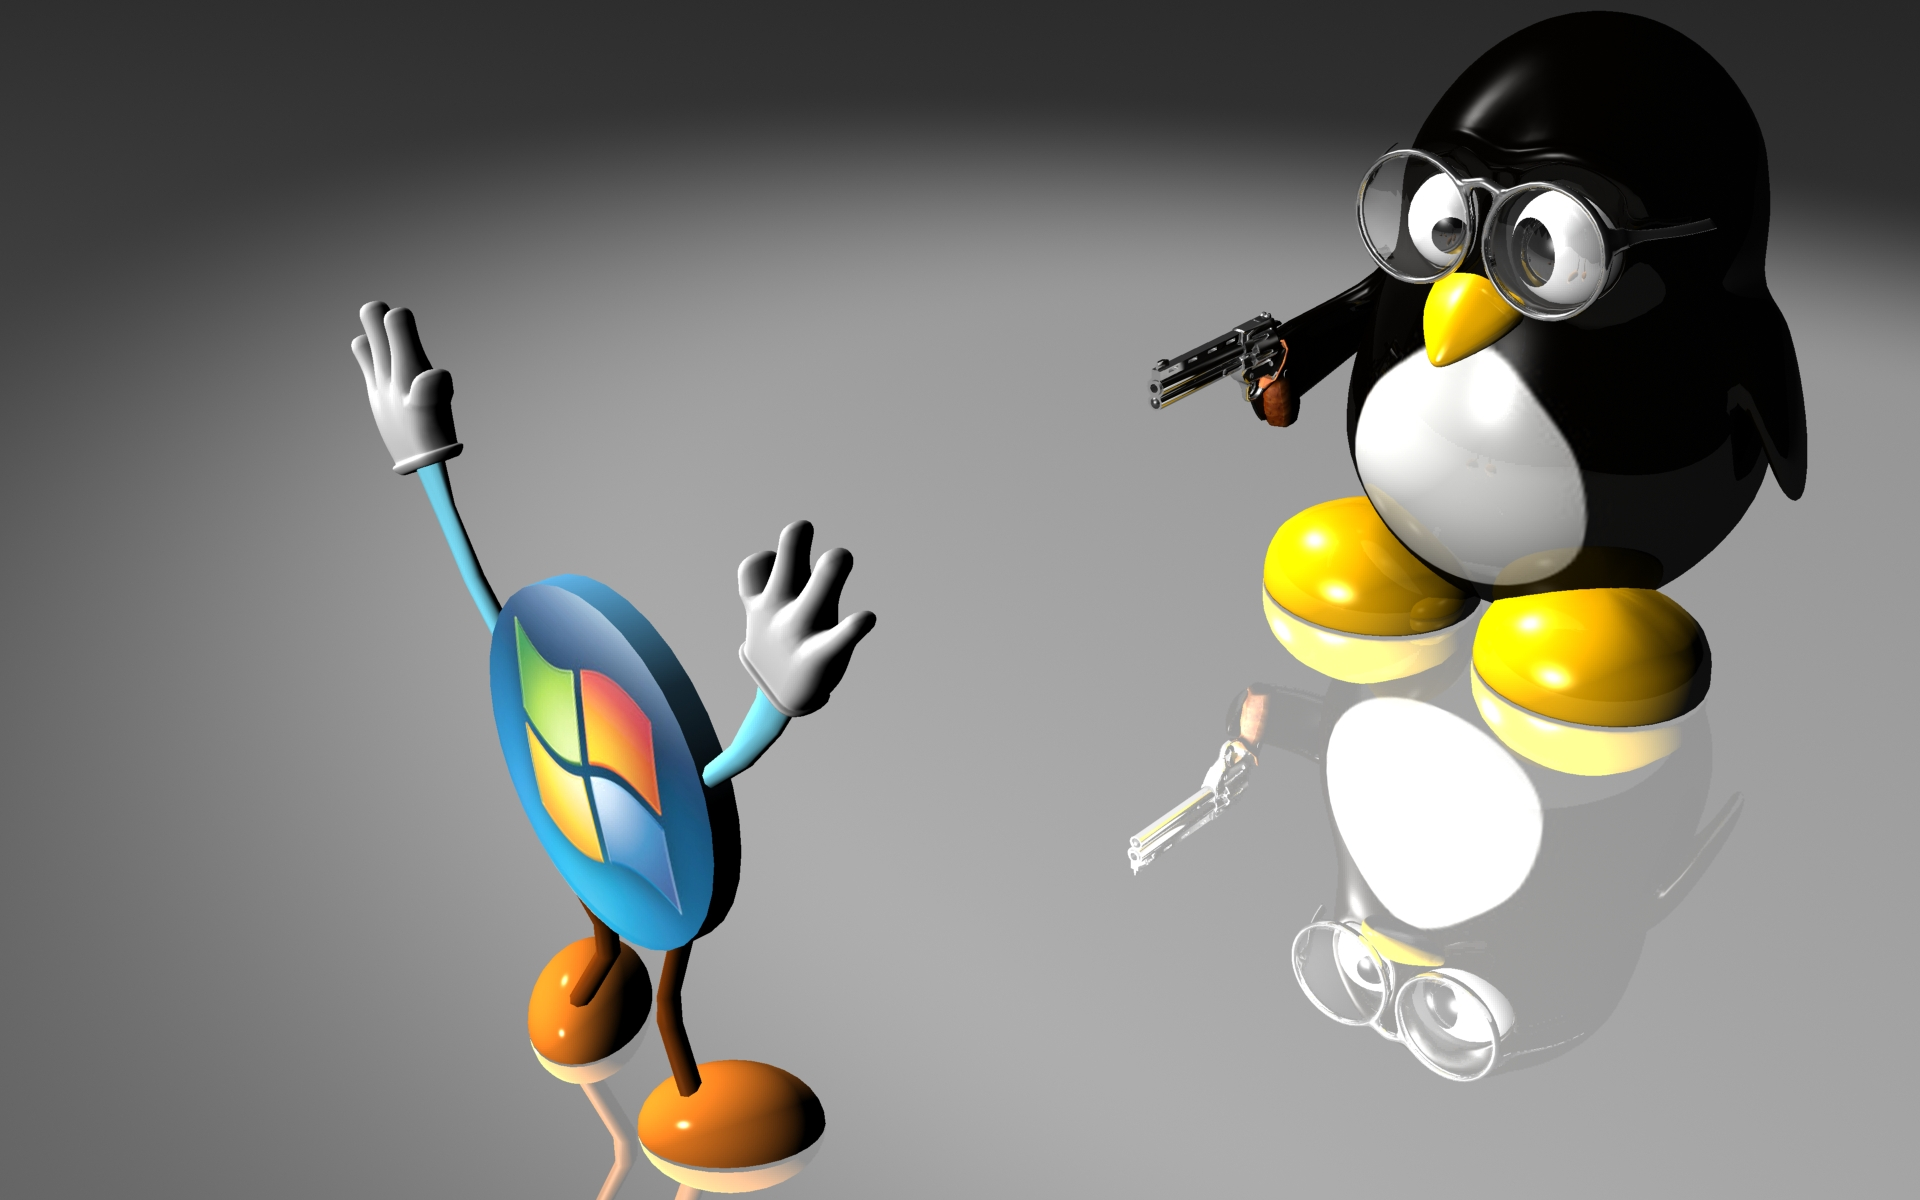 Technology - Linux  Penguin Tree Blue Fight Gun Humor Products Windows Wallpaper